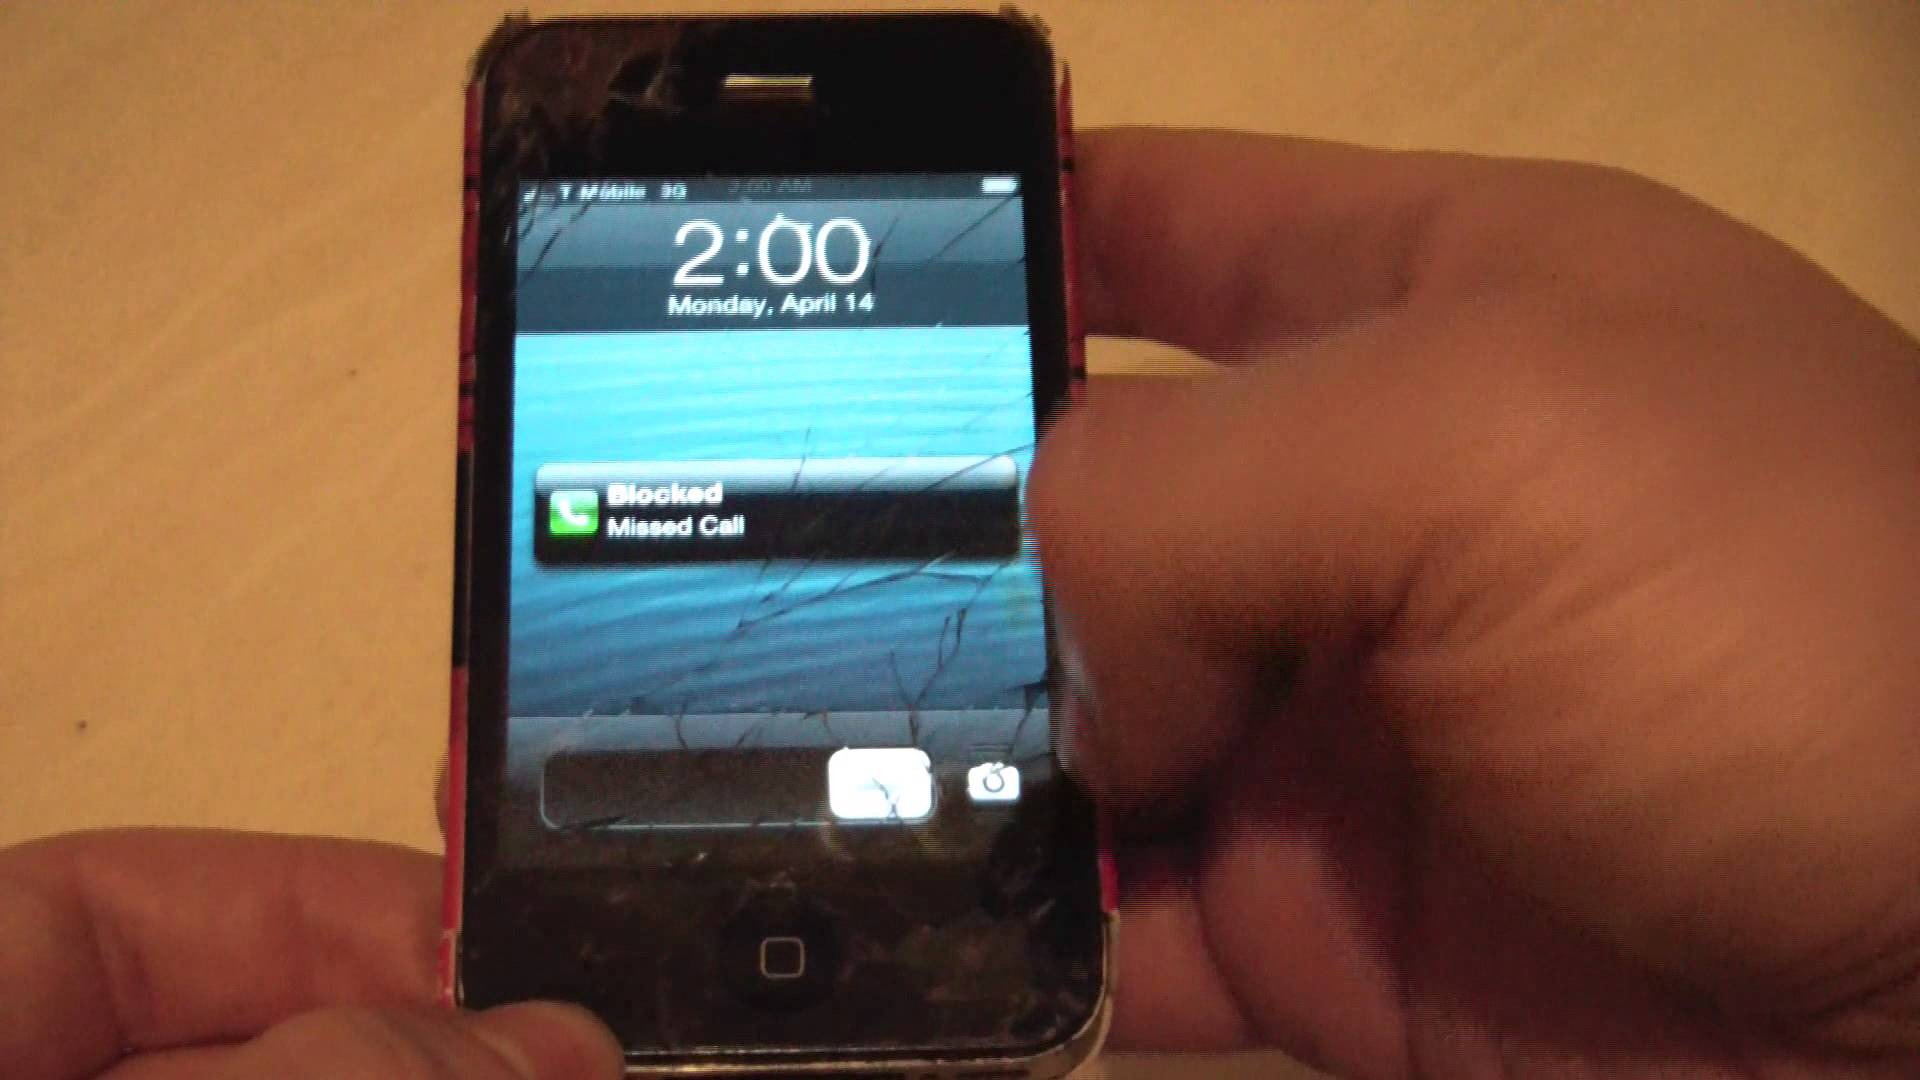 How To Fix The Ringer On An iPhone Quick And Easy 1